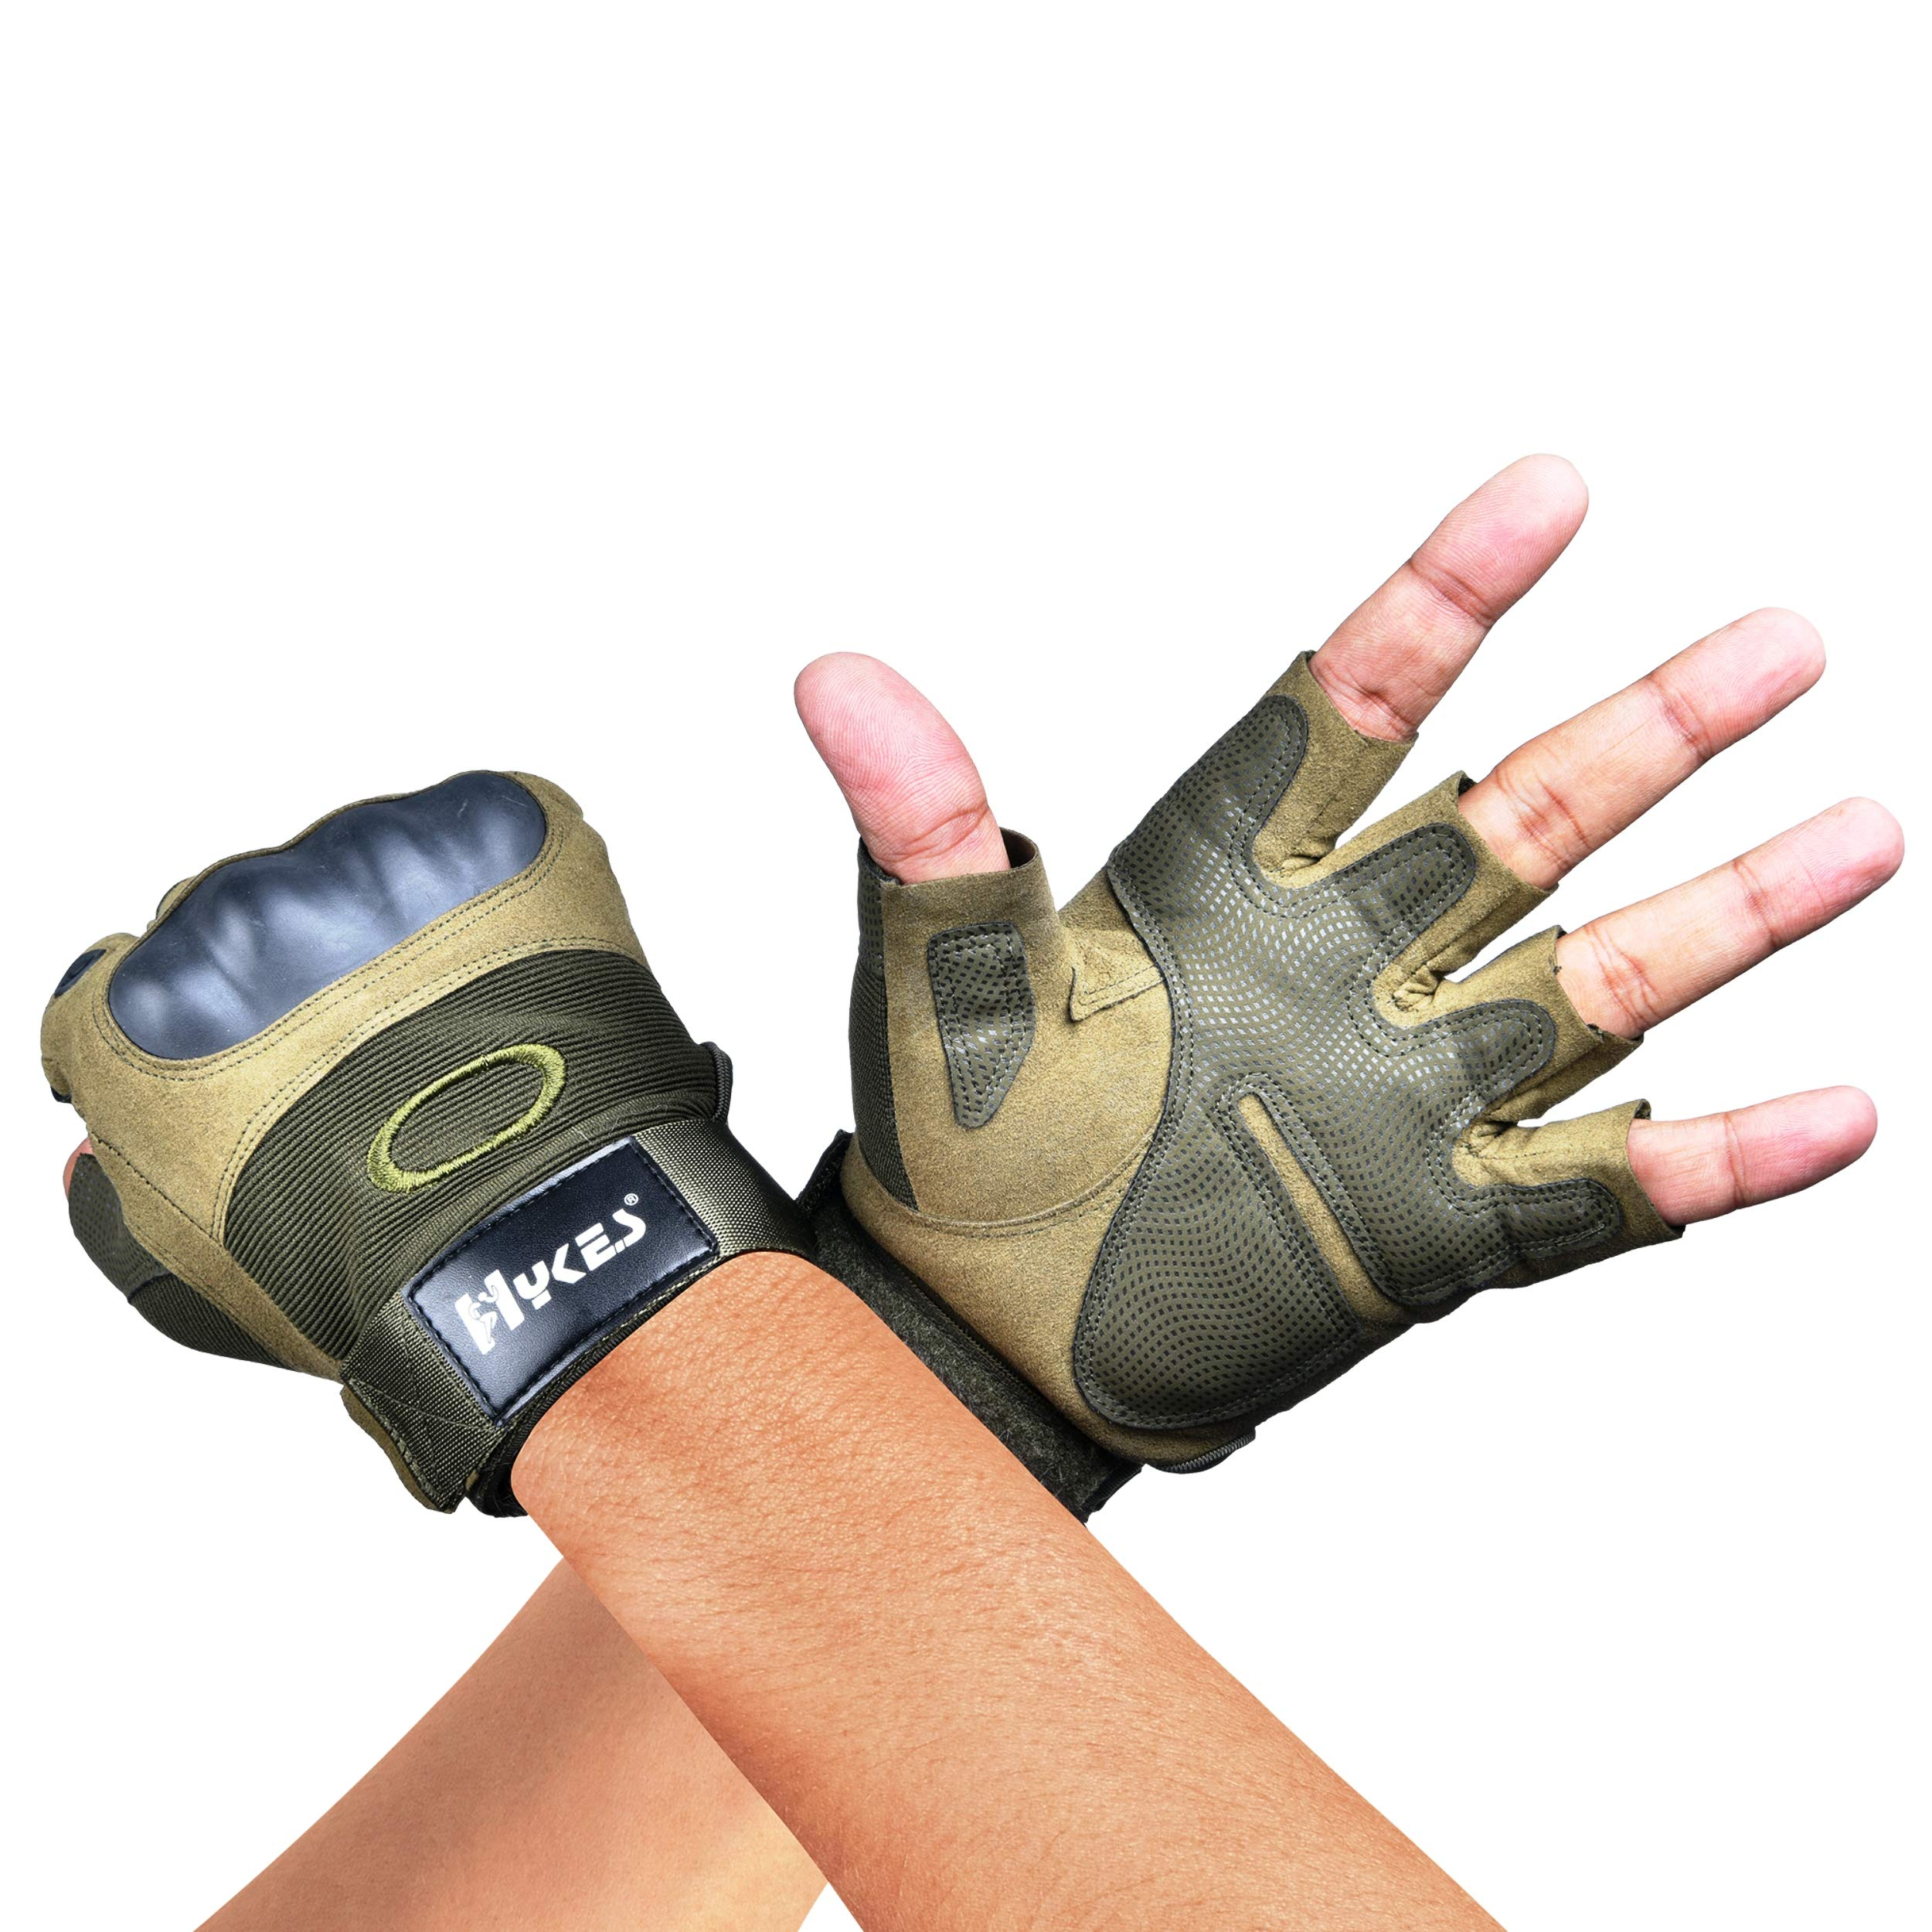 Hykes Tactical Gloves for Workout Bike Driving Cycling Motorcycle Military Safety Sports Hiking Climbing Outdoor Gym Fitness Hand Grip product image